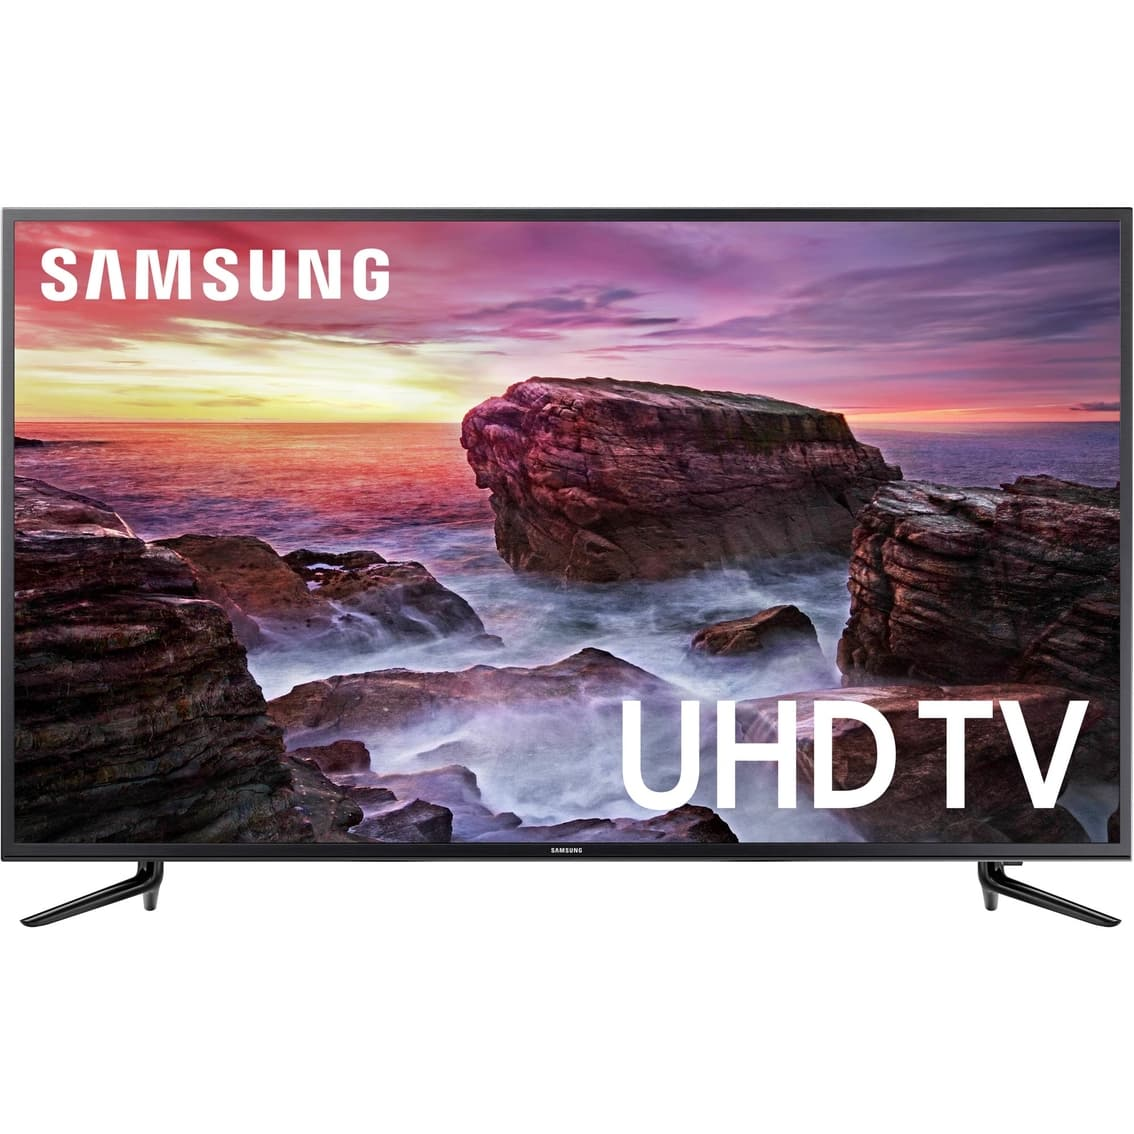 """AAFES/Military - 58"""" Samsung 4K TV - Only on 7/25 $399"""